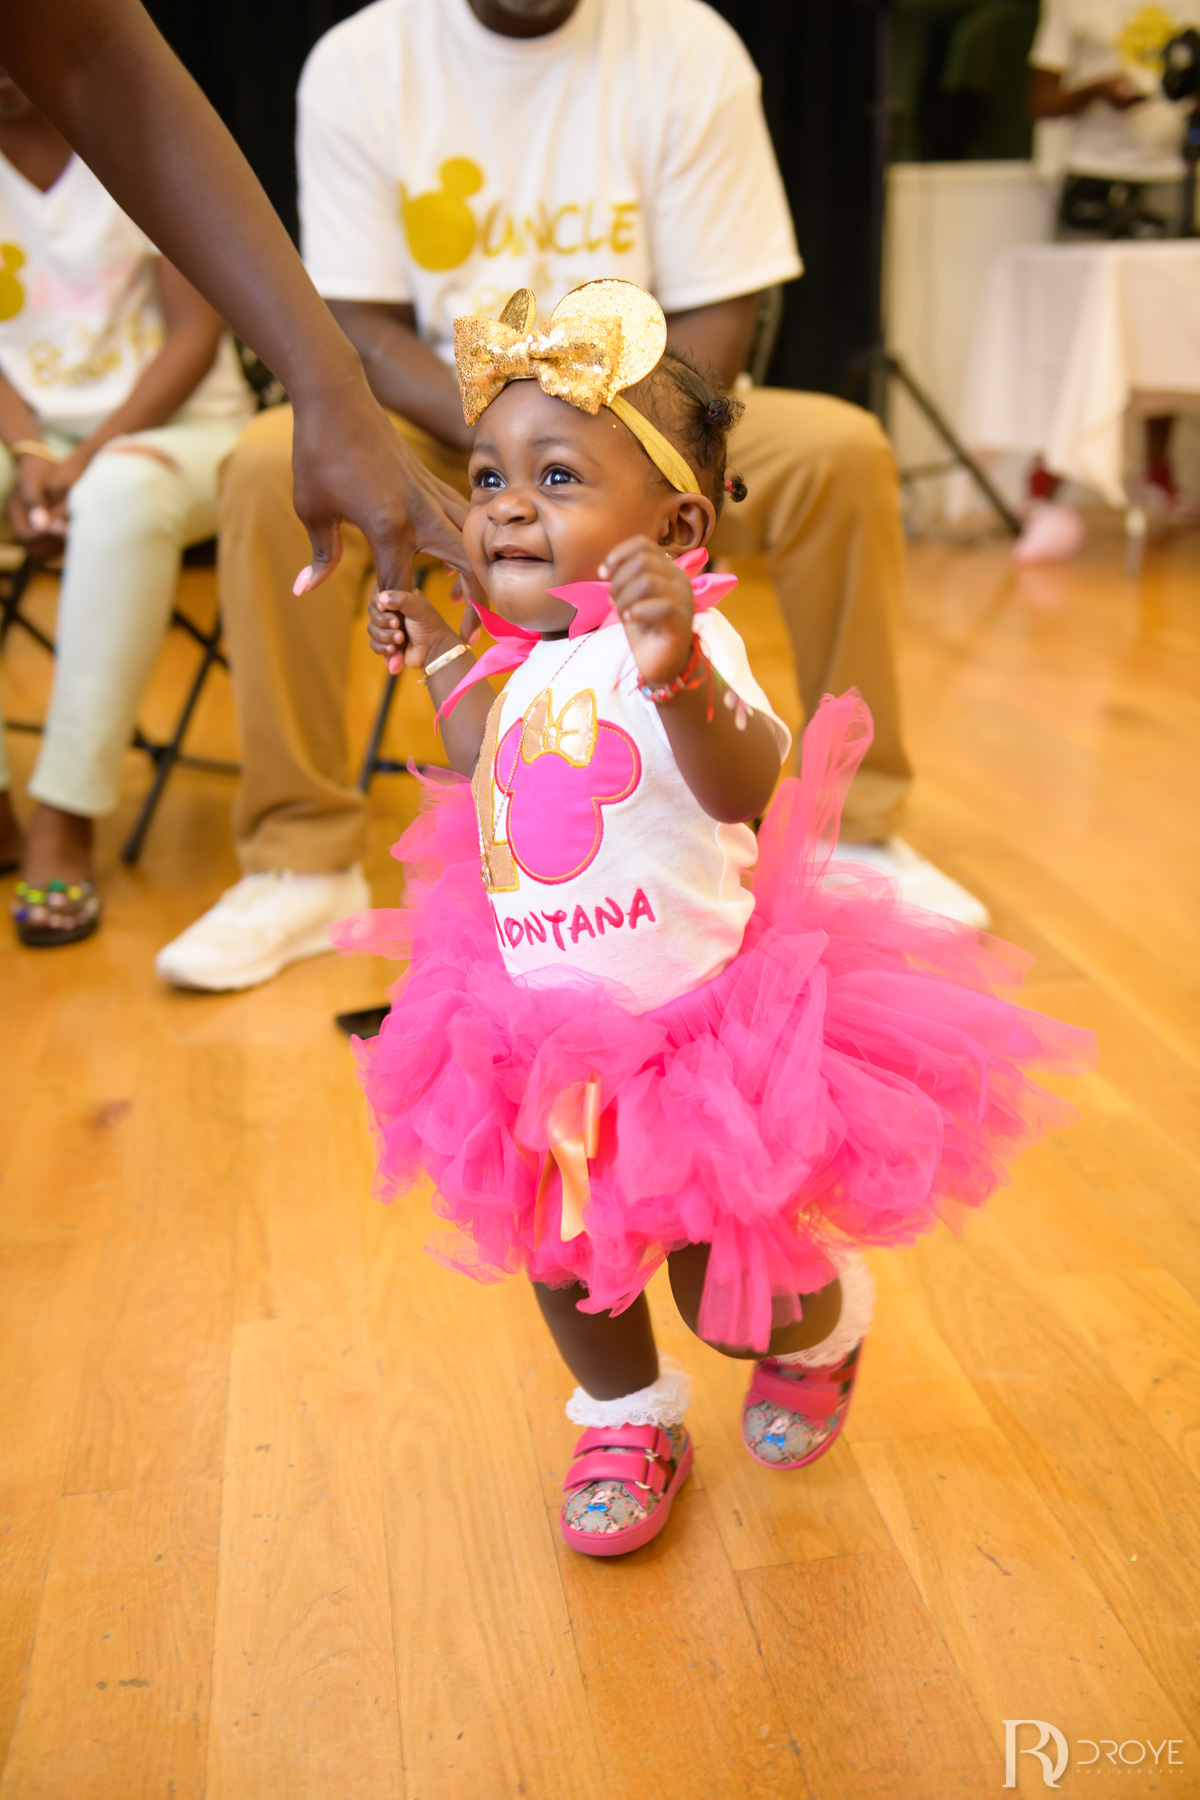 Montana's 1st Birthday Party